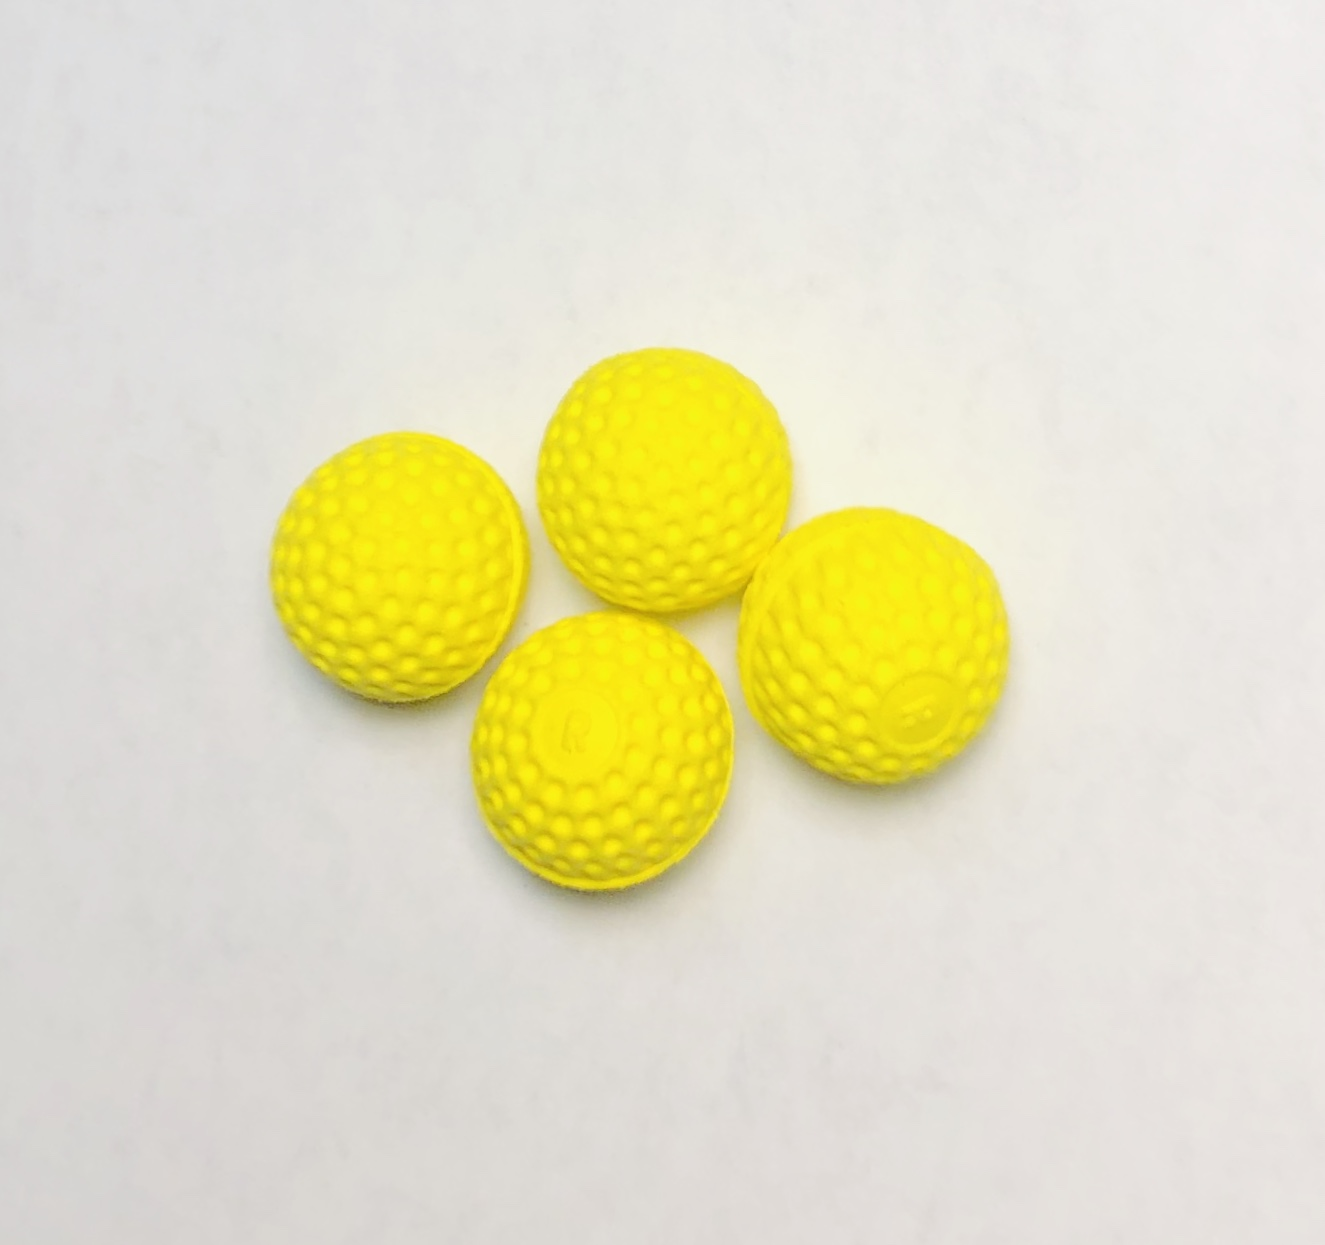 Neon Gripper Combo Chop Cup Balls Set of 4 by